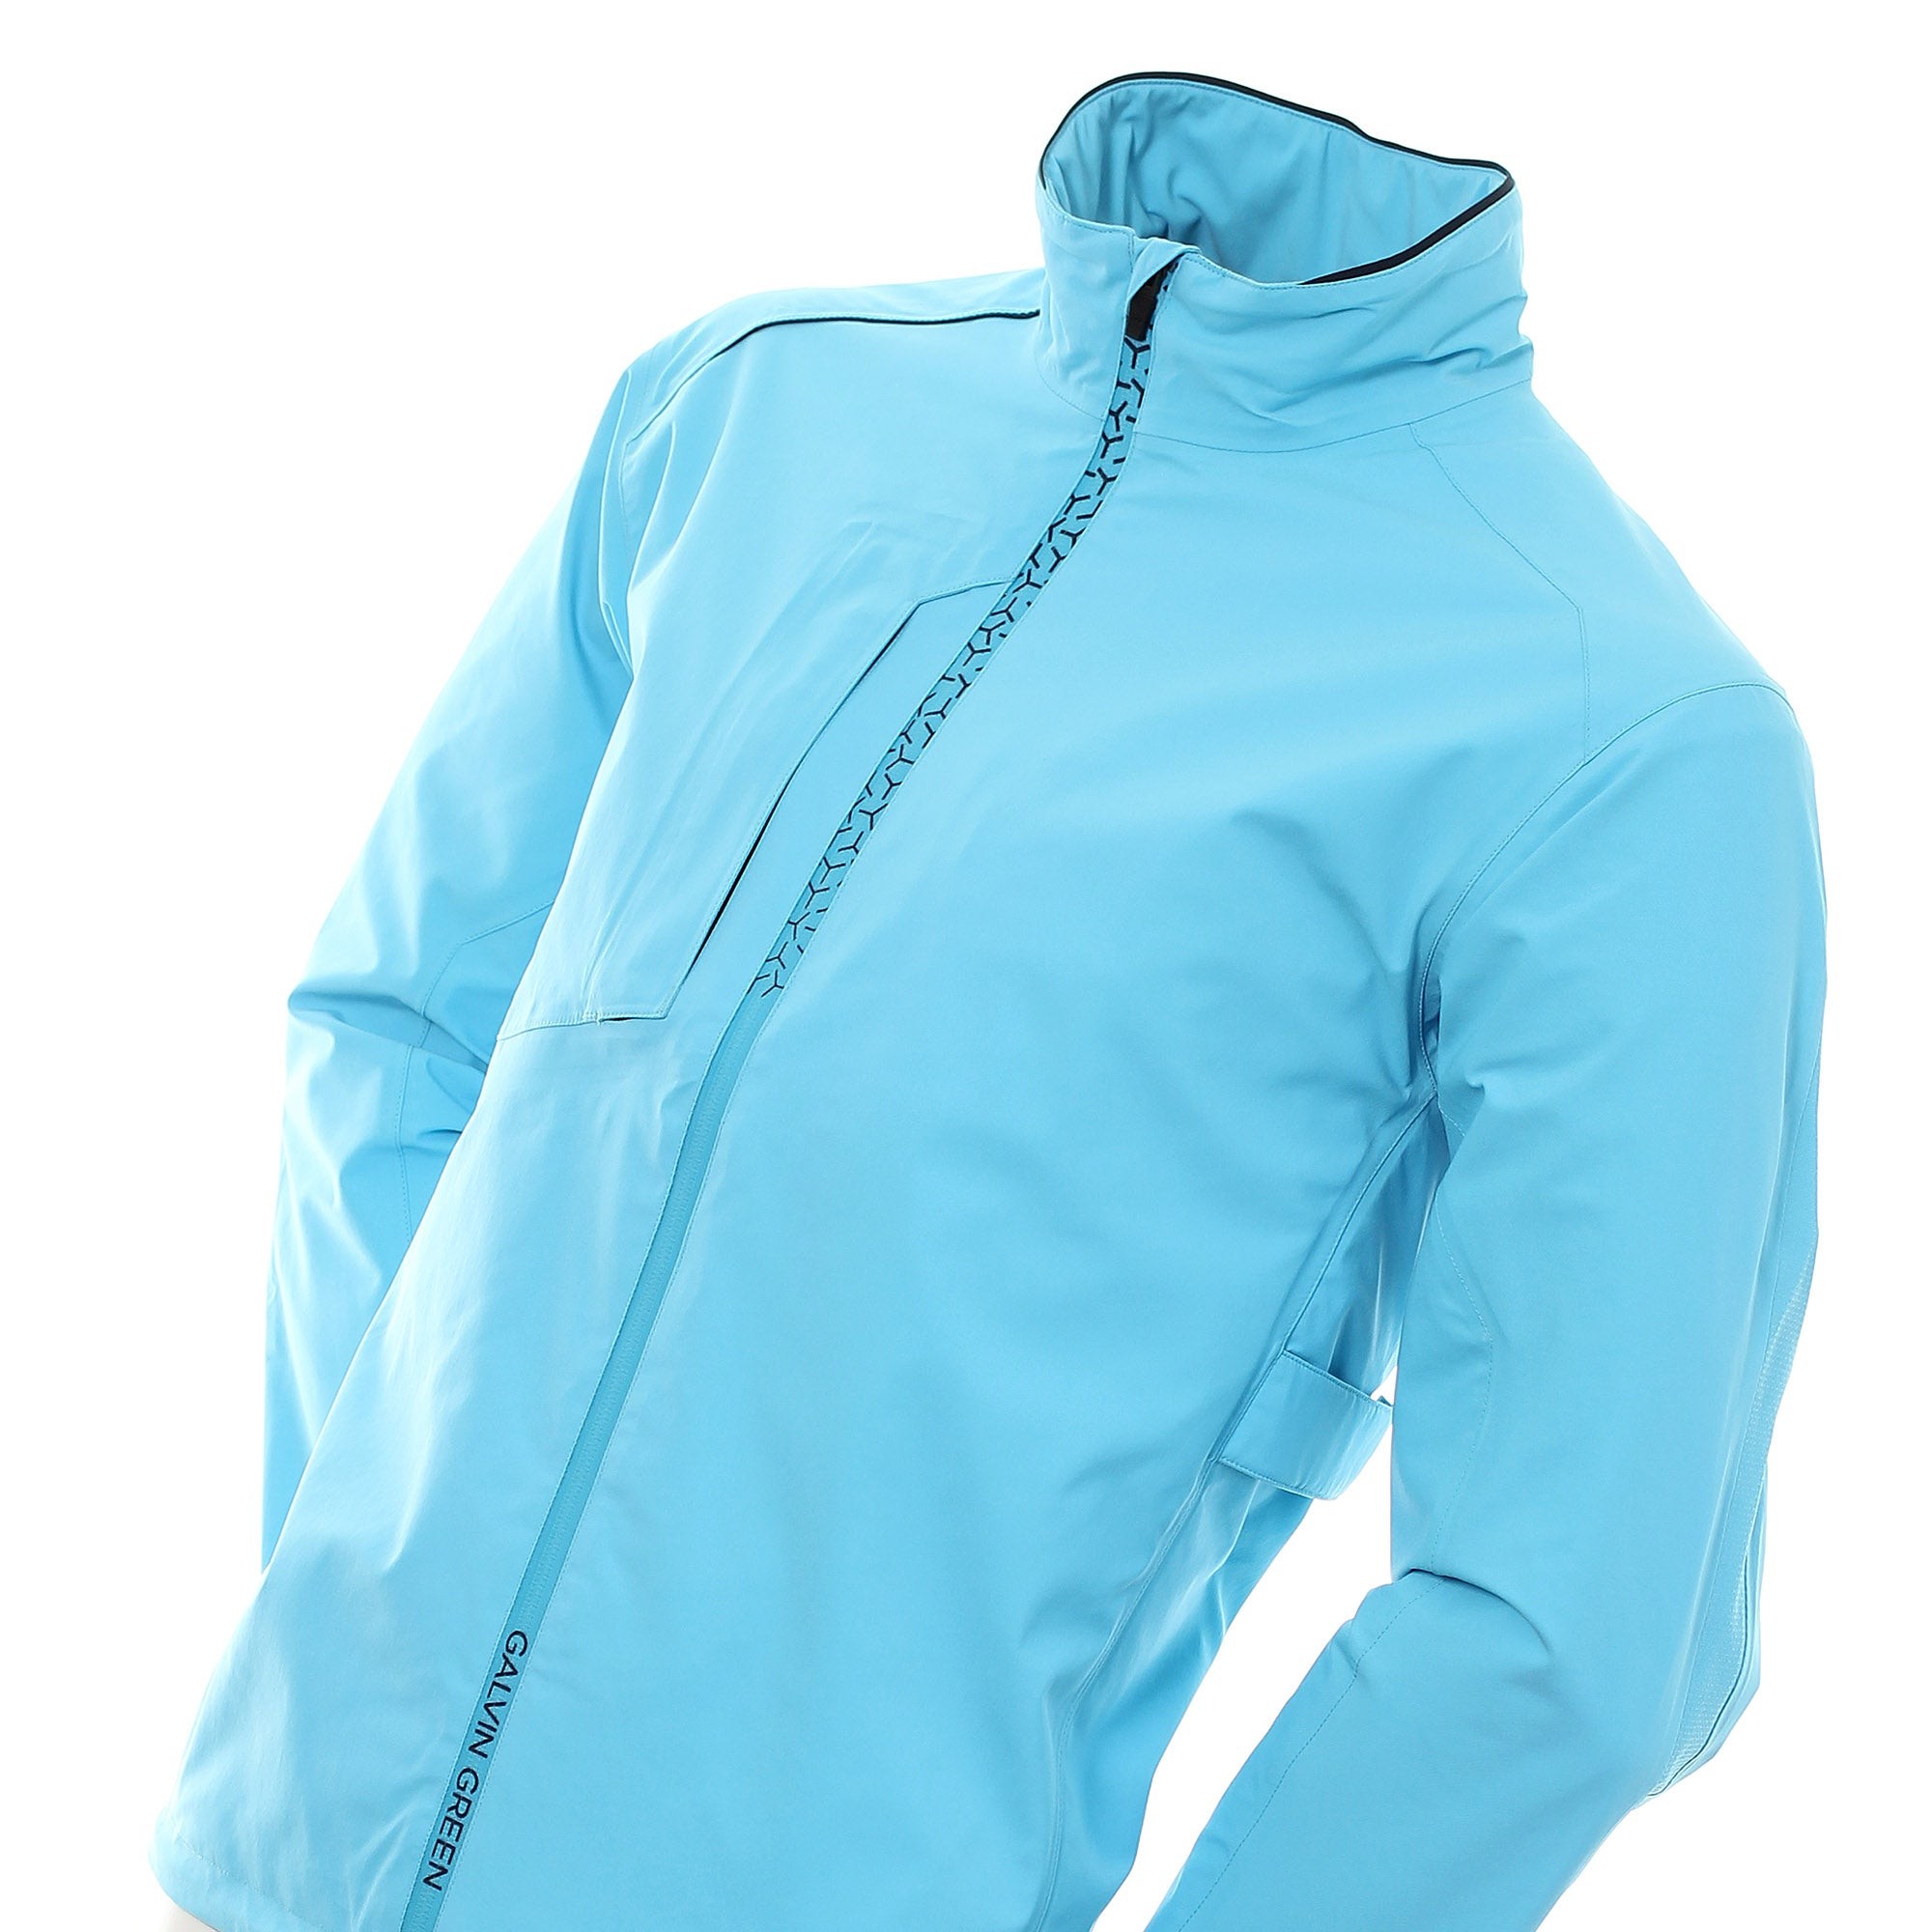 Galvin Green Alfred Gore-Tex Waterproof Golf Jacket